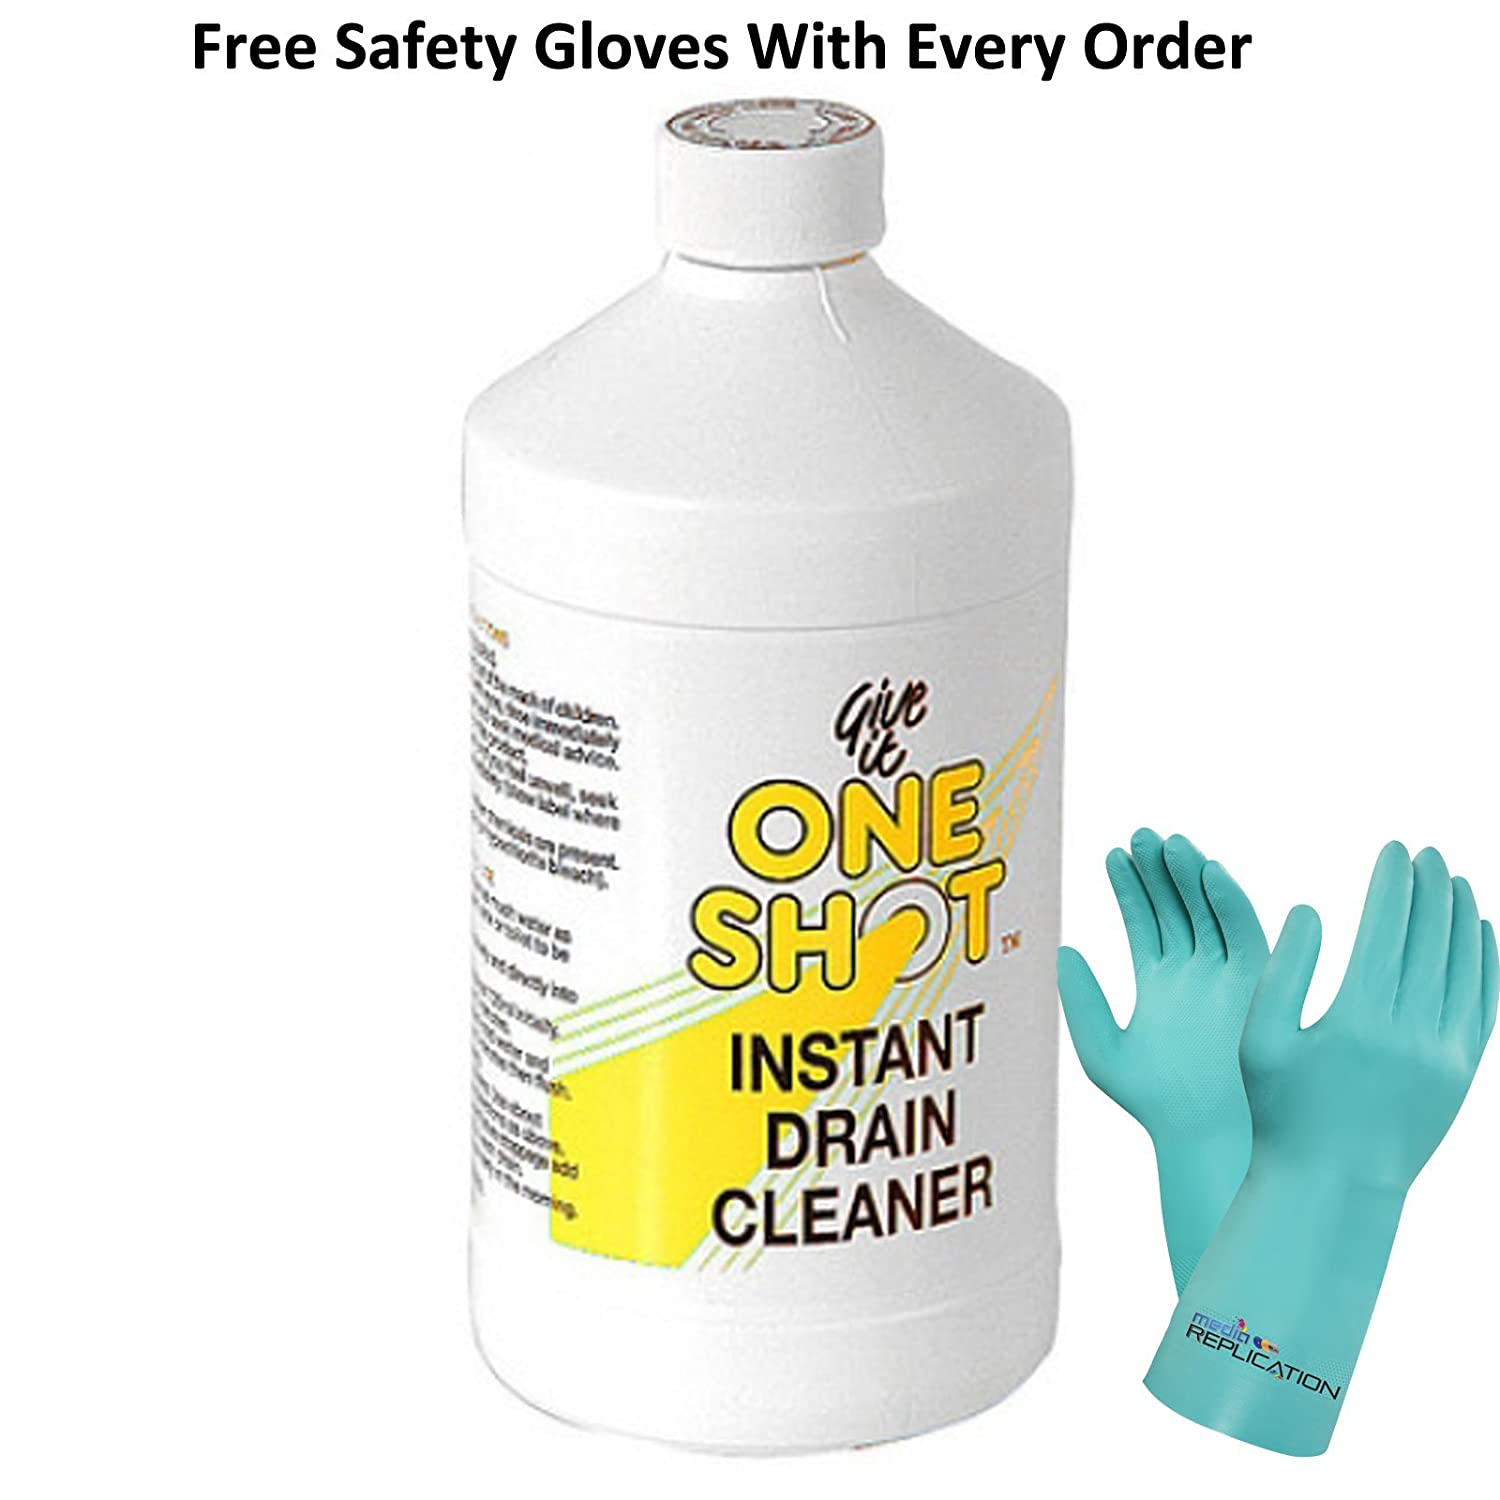 one shot instant drain cleaner 1 litre 2 free pair of safety gloves amazoncouk kitchen u0026 home